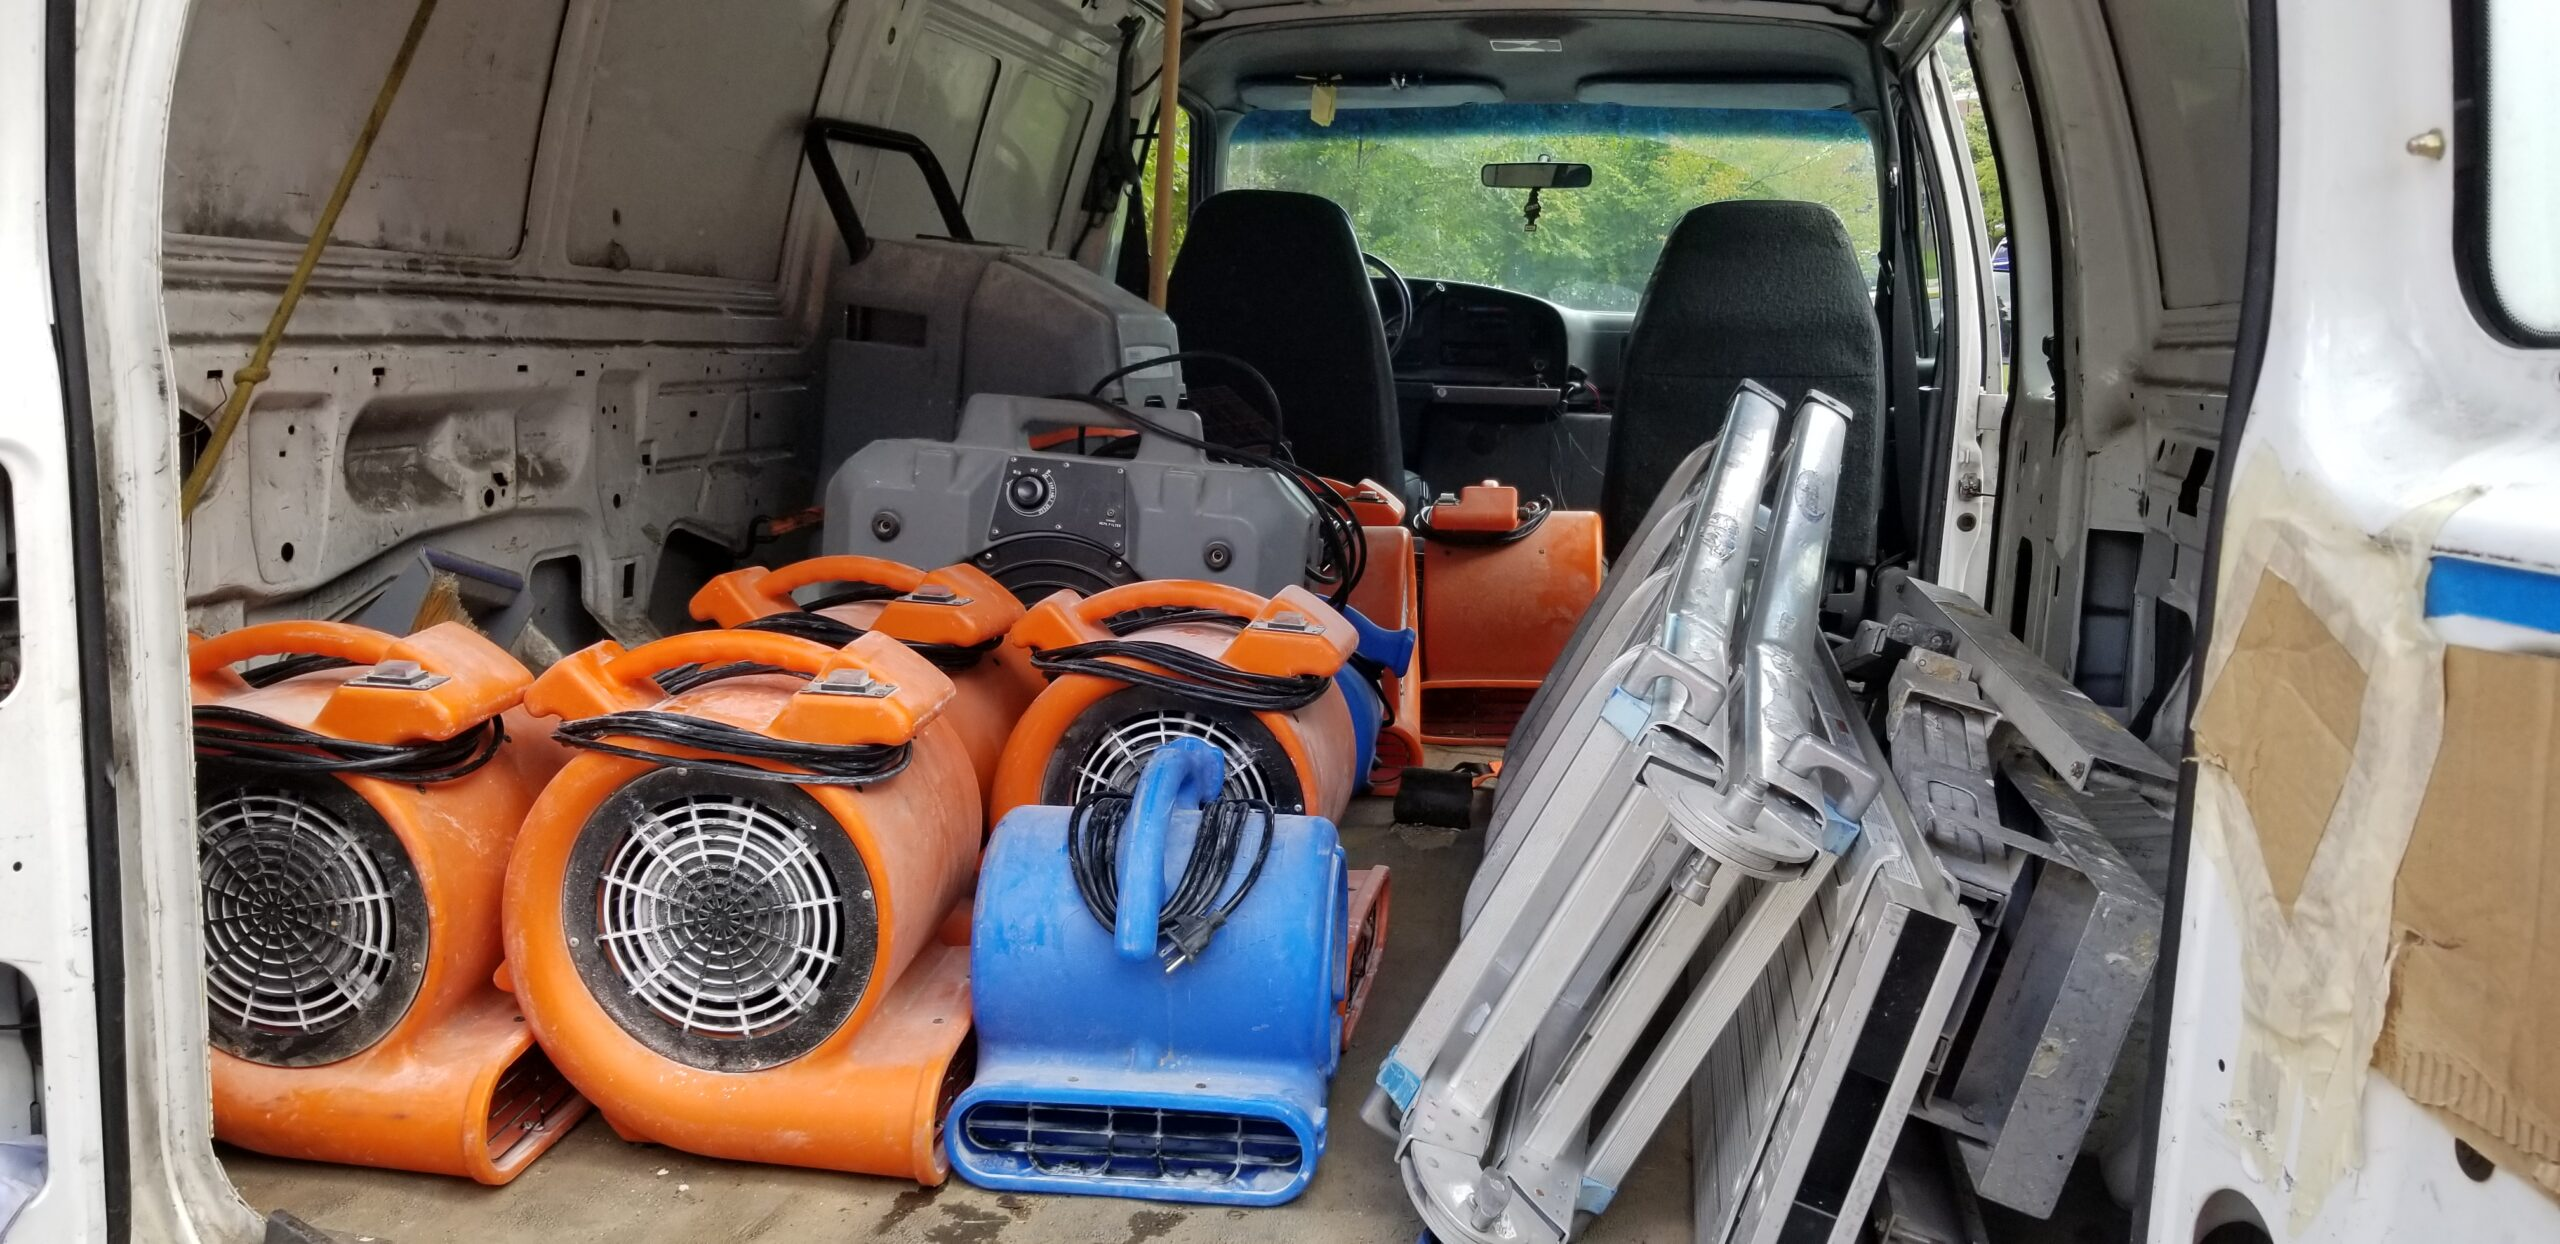 equipment in van